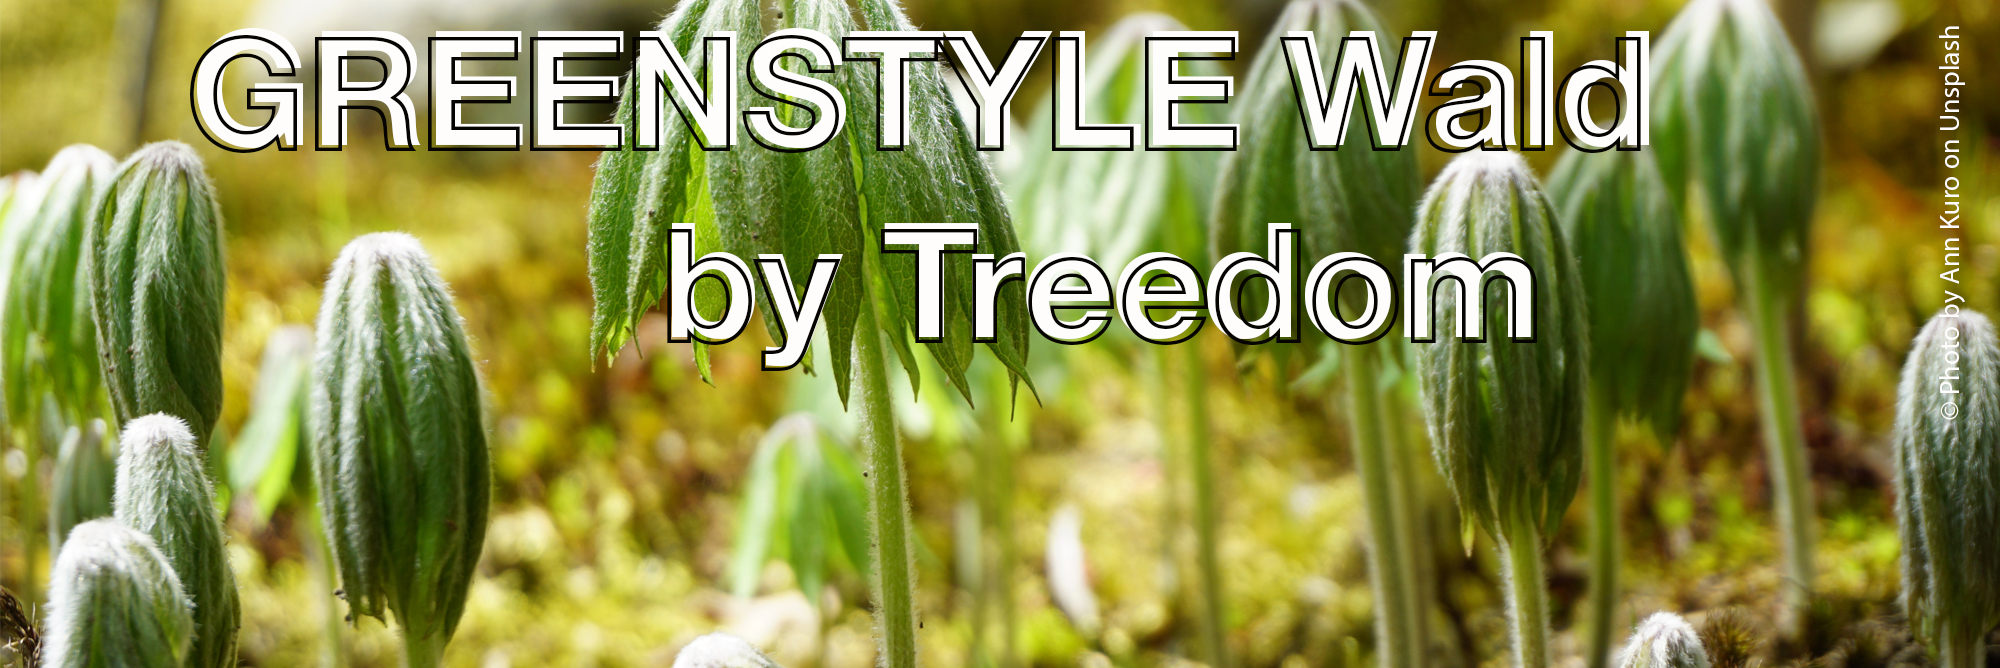 GREENSTYLE Wald – plant now!